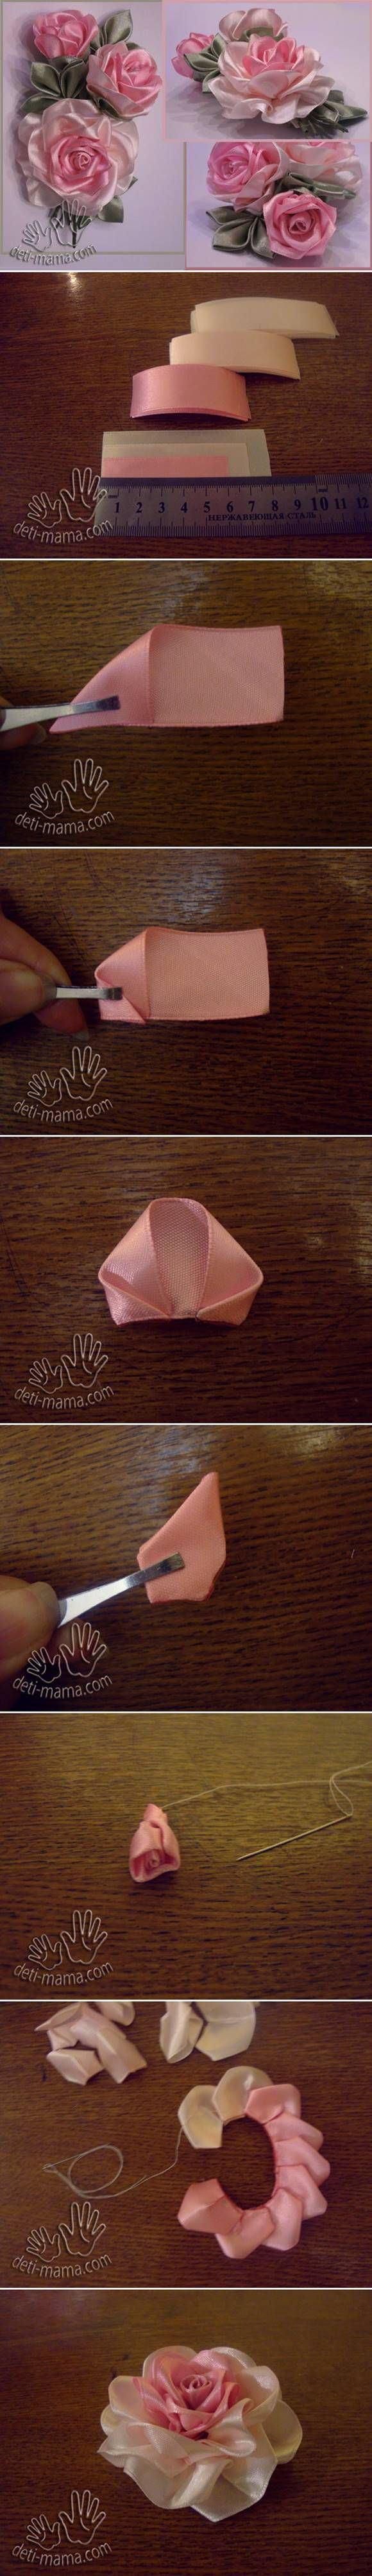 DIY Beautiful Satin Ribbon Rosette #craft #sewing #ribbon_flower